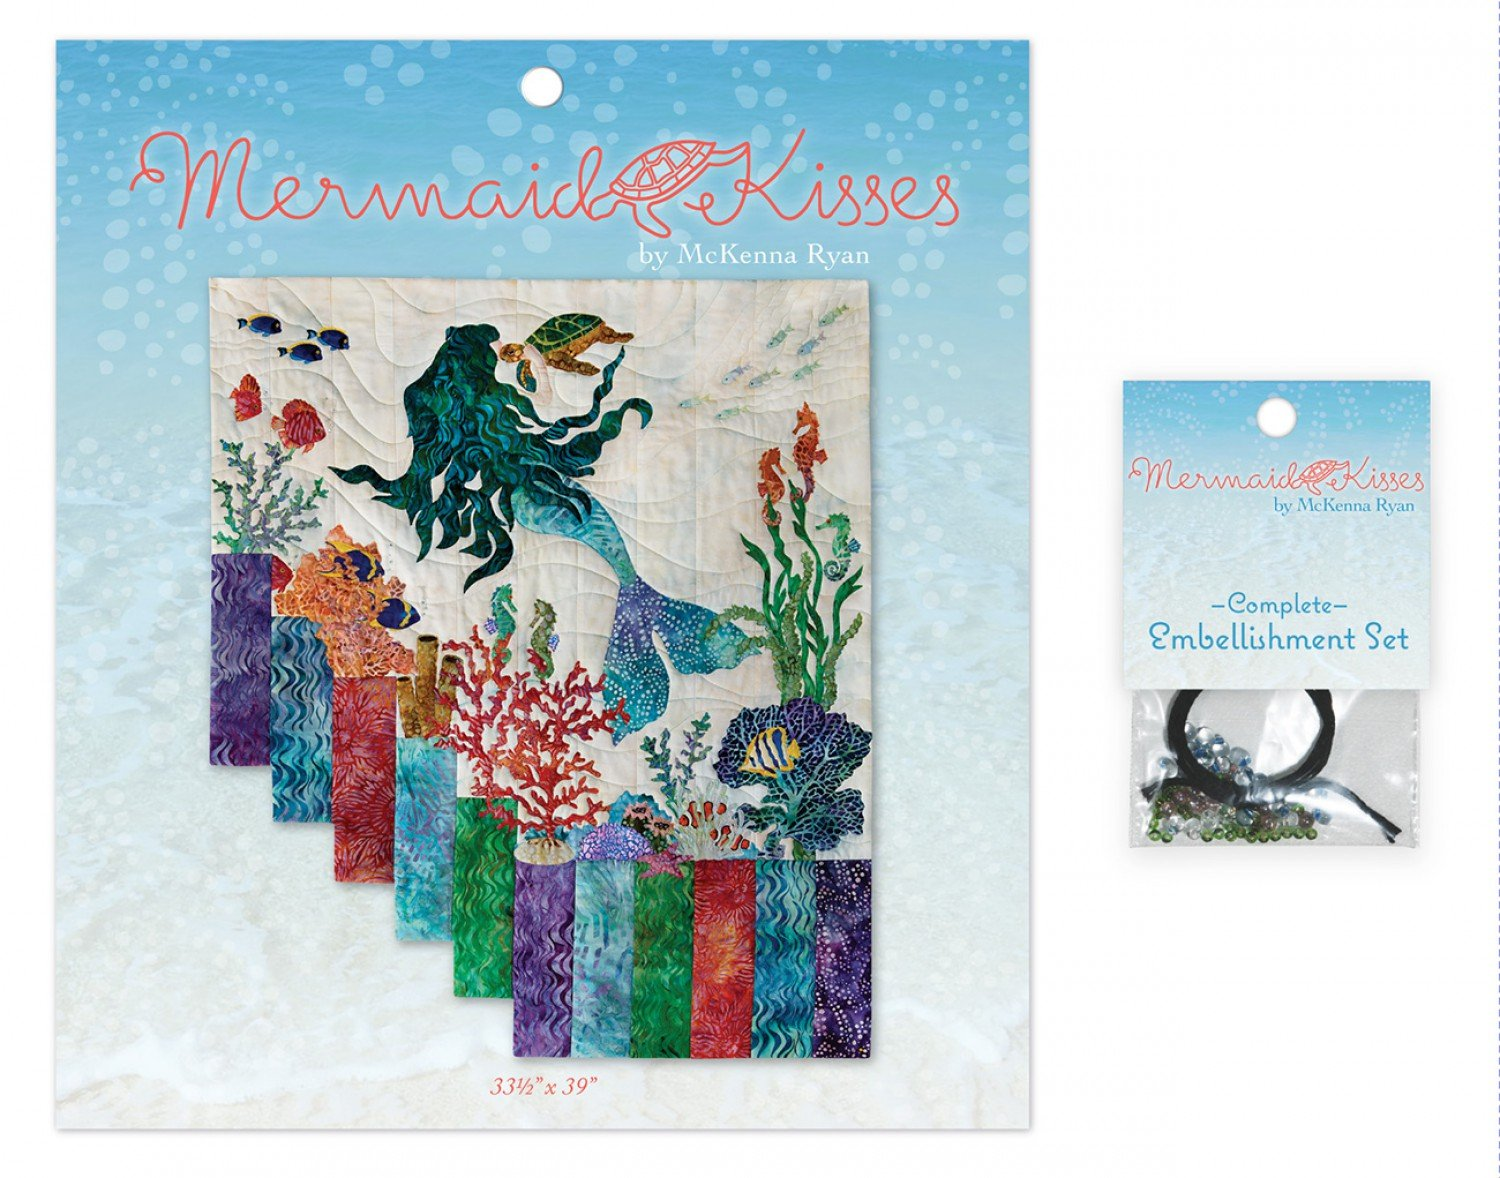 Mermaid Kisses Complete Embellishment Kit and Pattern Set